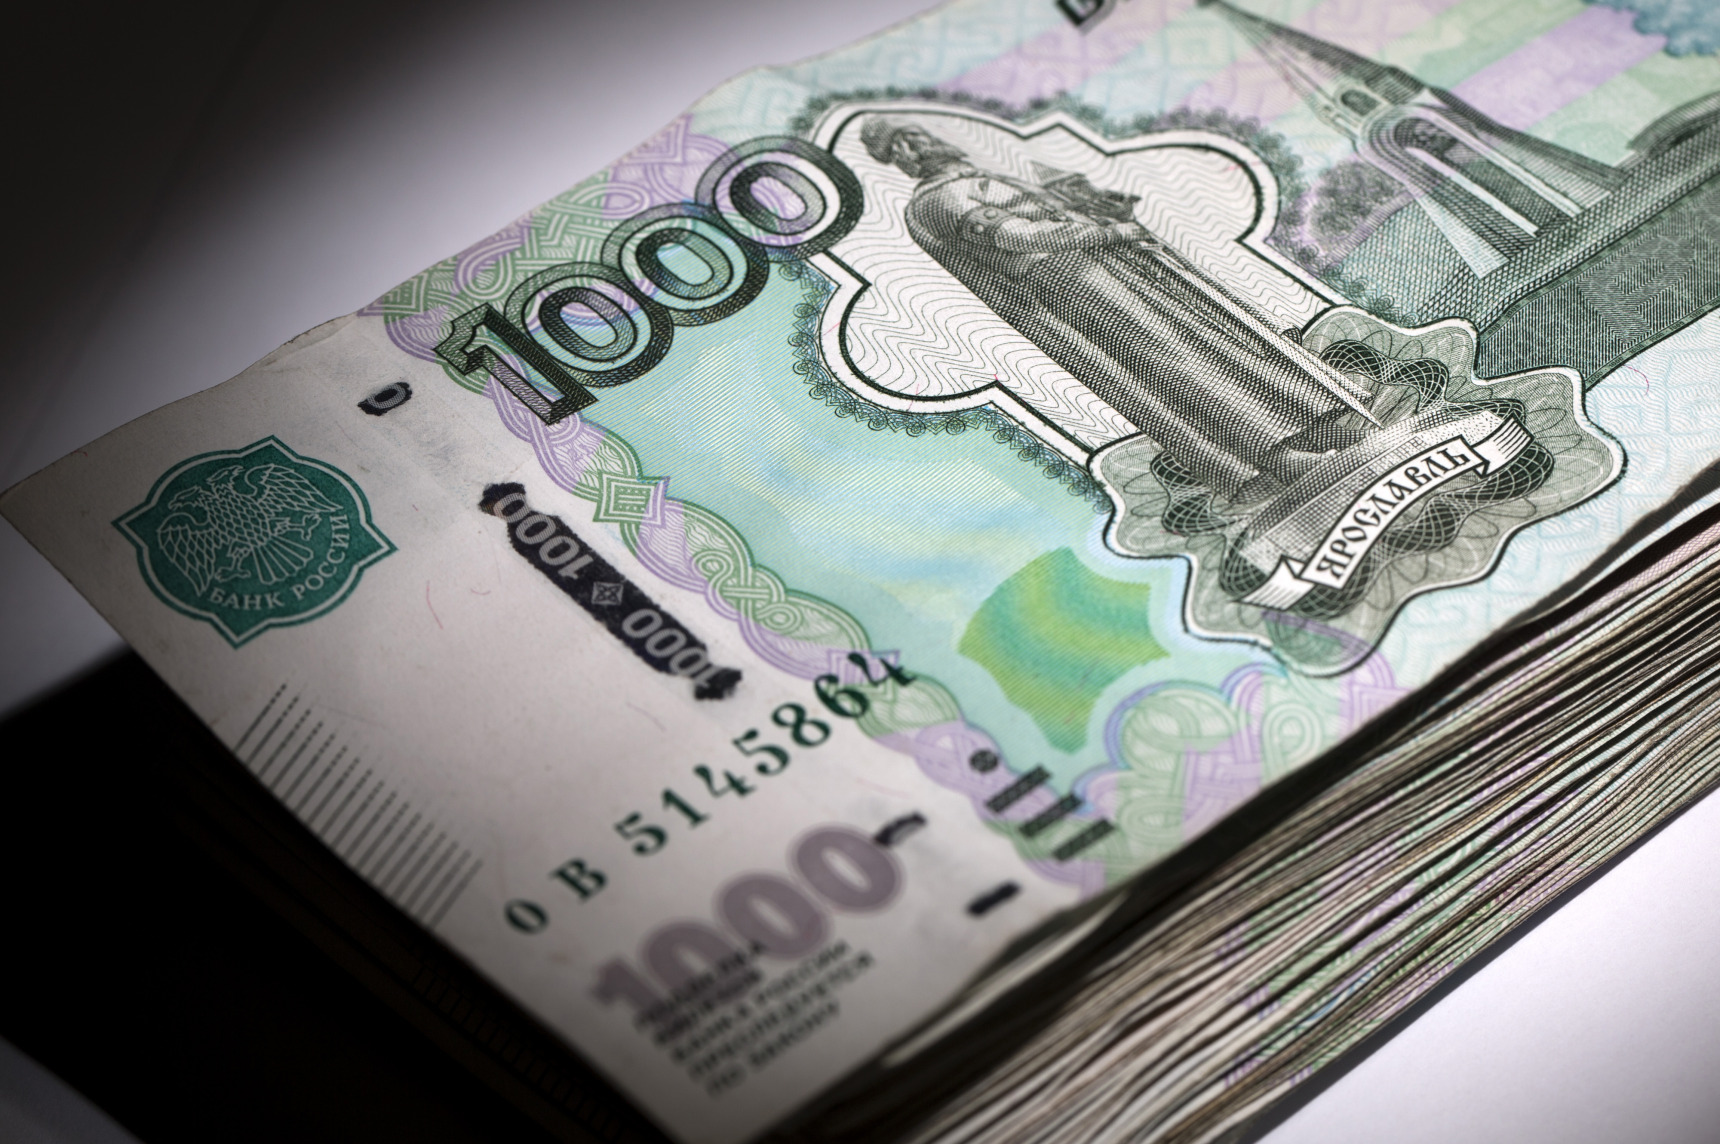 The ruble is falling, what are the consequences